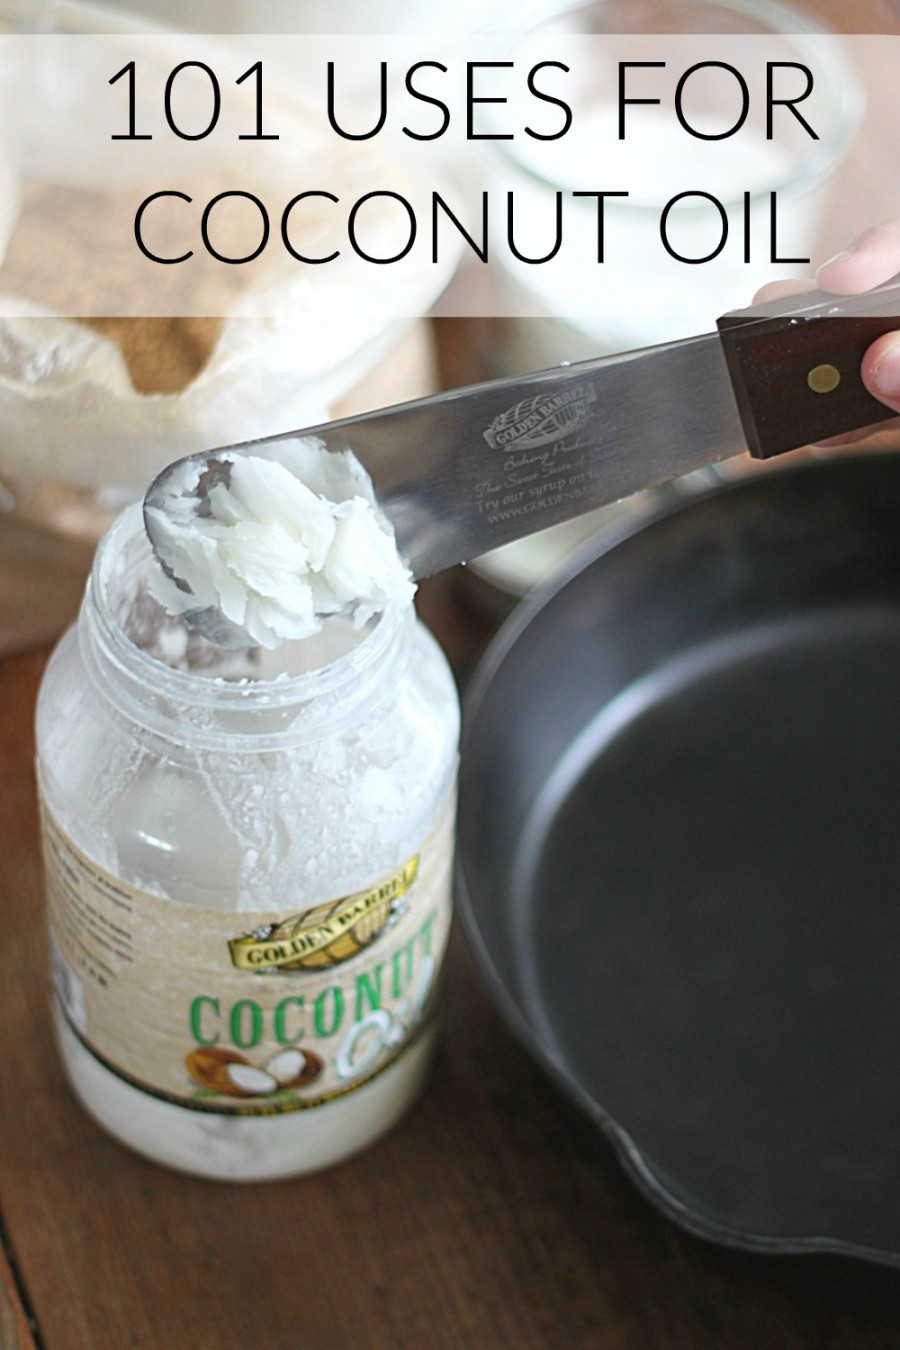 101 Uses for Coconut Oil - Golden Barrel